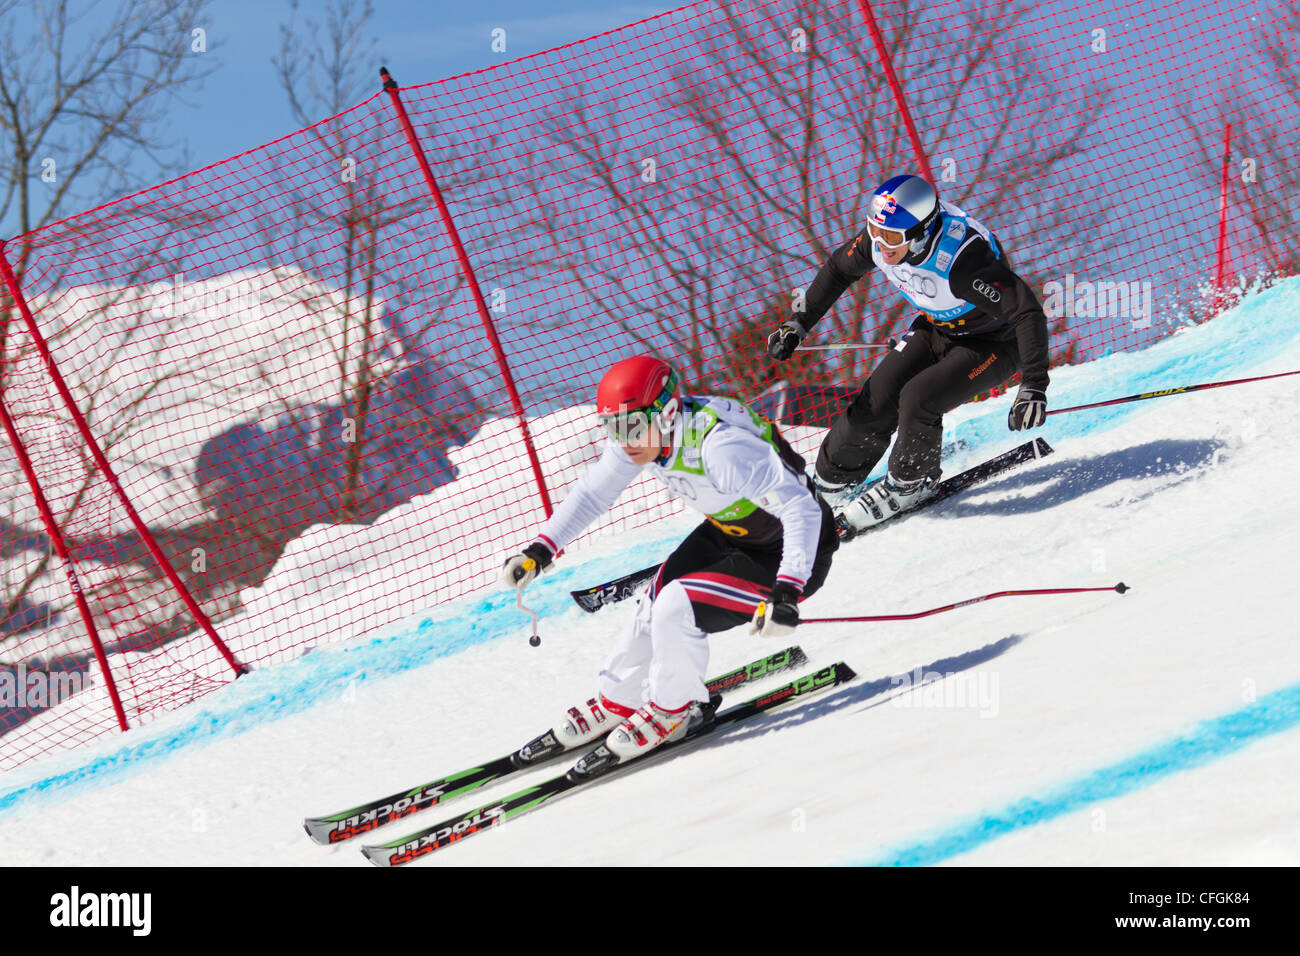 Athletes fight for lead position at FIS Skicross Worldcup March 10, 2012 in Grindelwald, Switzerland. Racer Nick - Stock Image